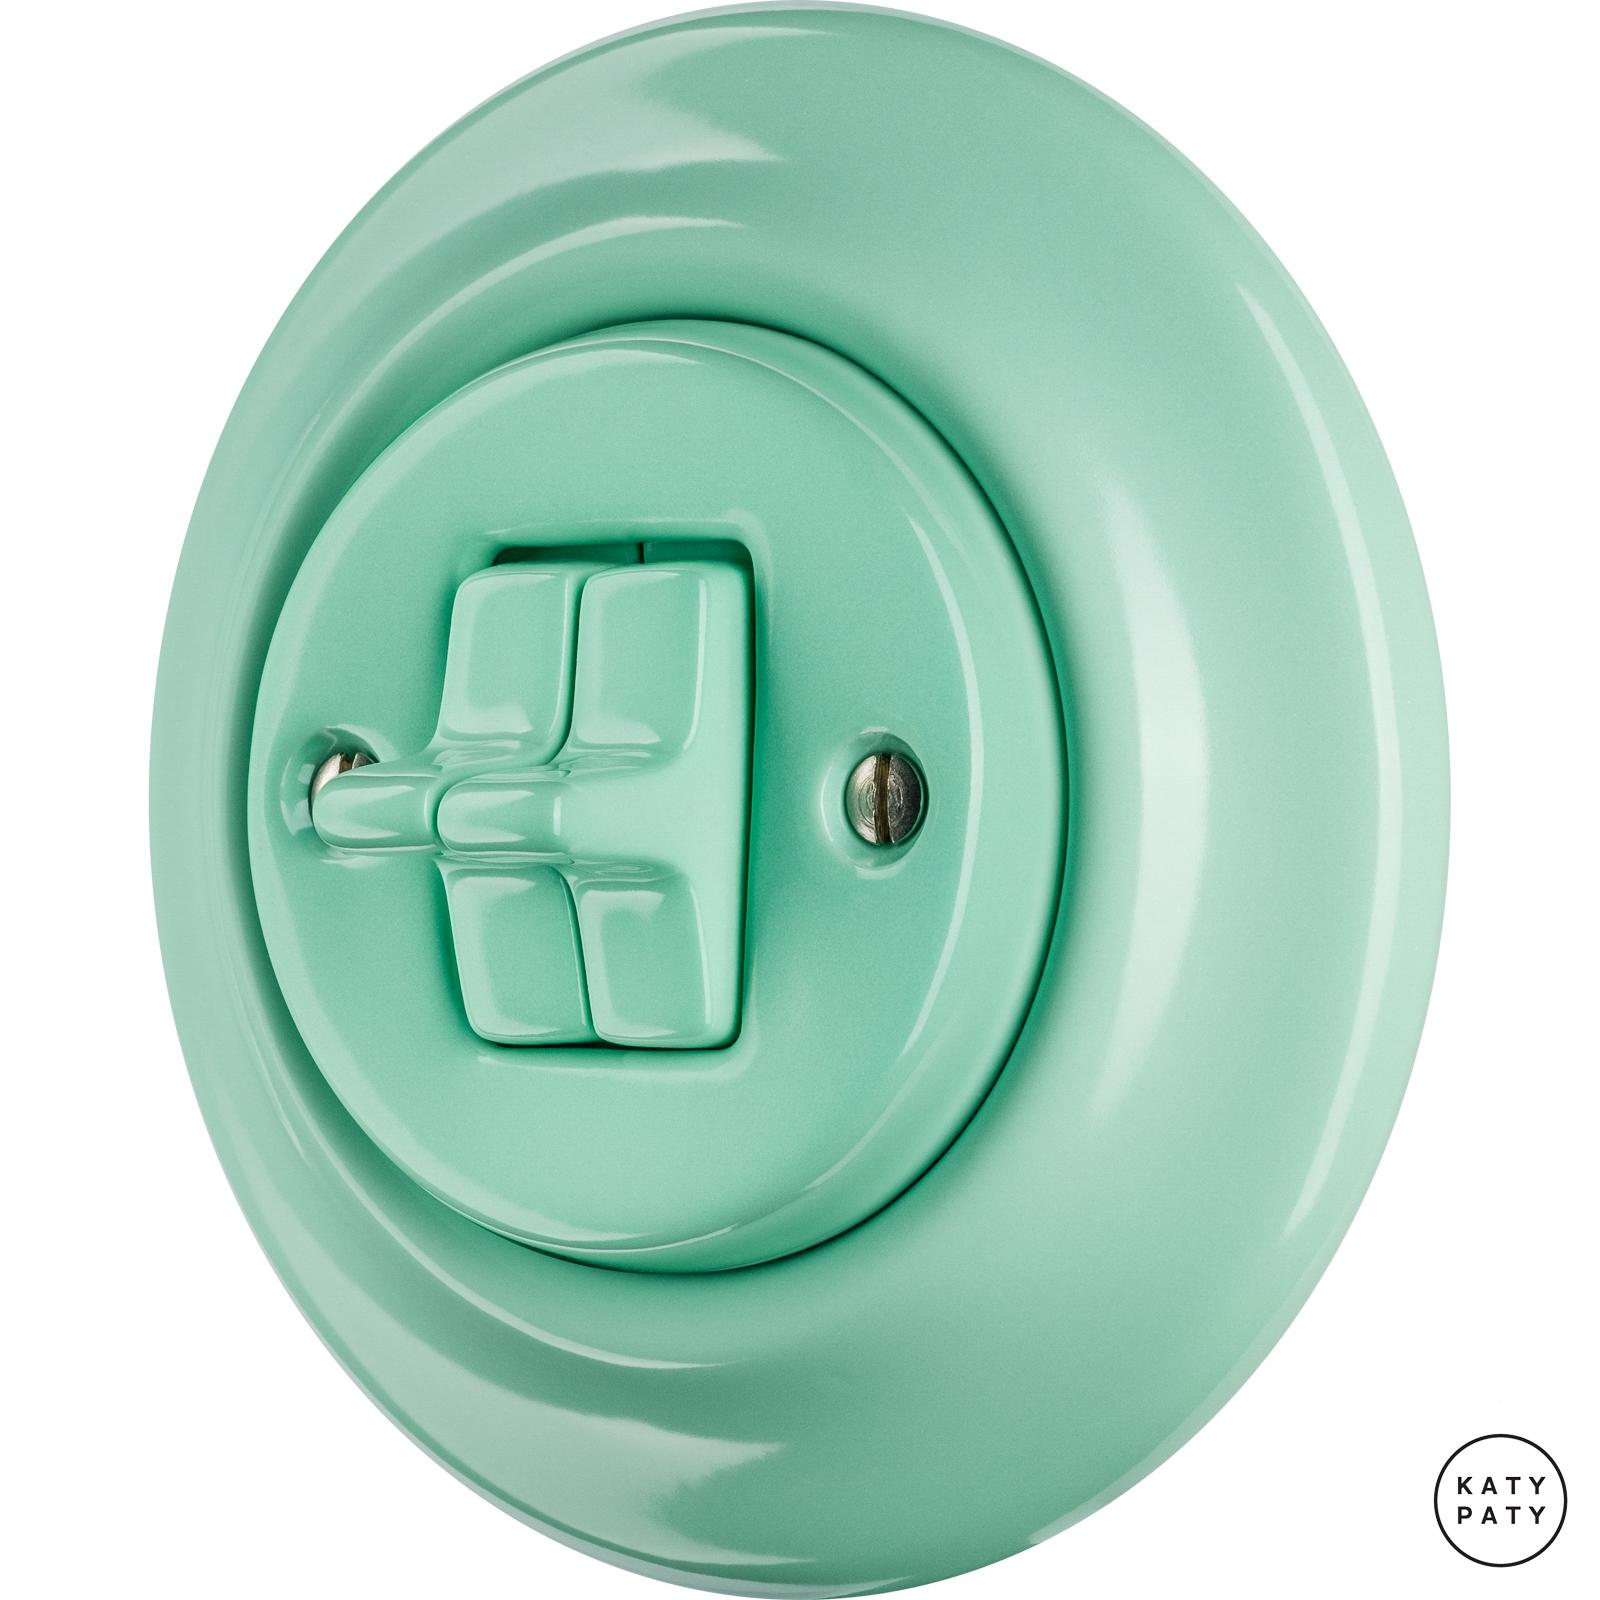 Porcelain toggle switches - a double gang ()  - PNOE MENTOL | Katy Paty